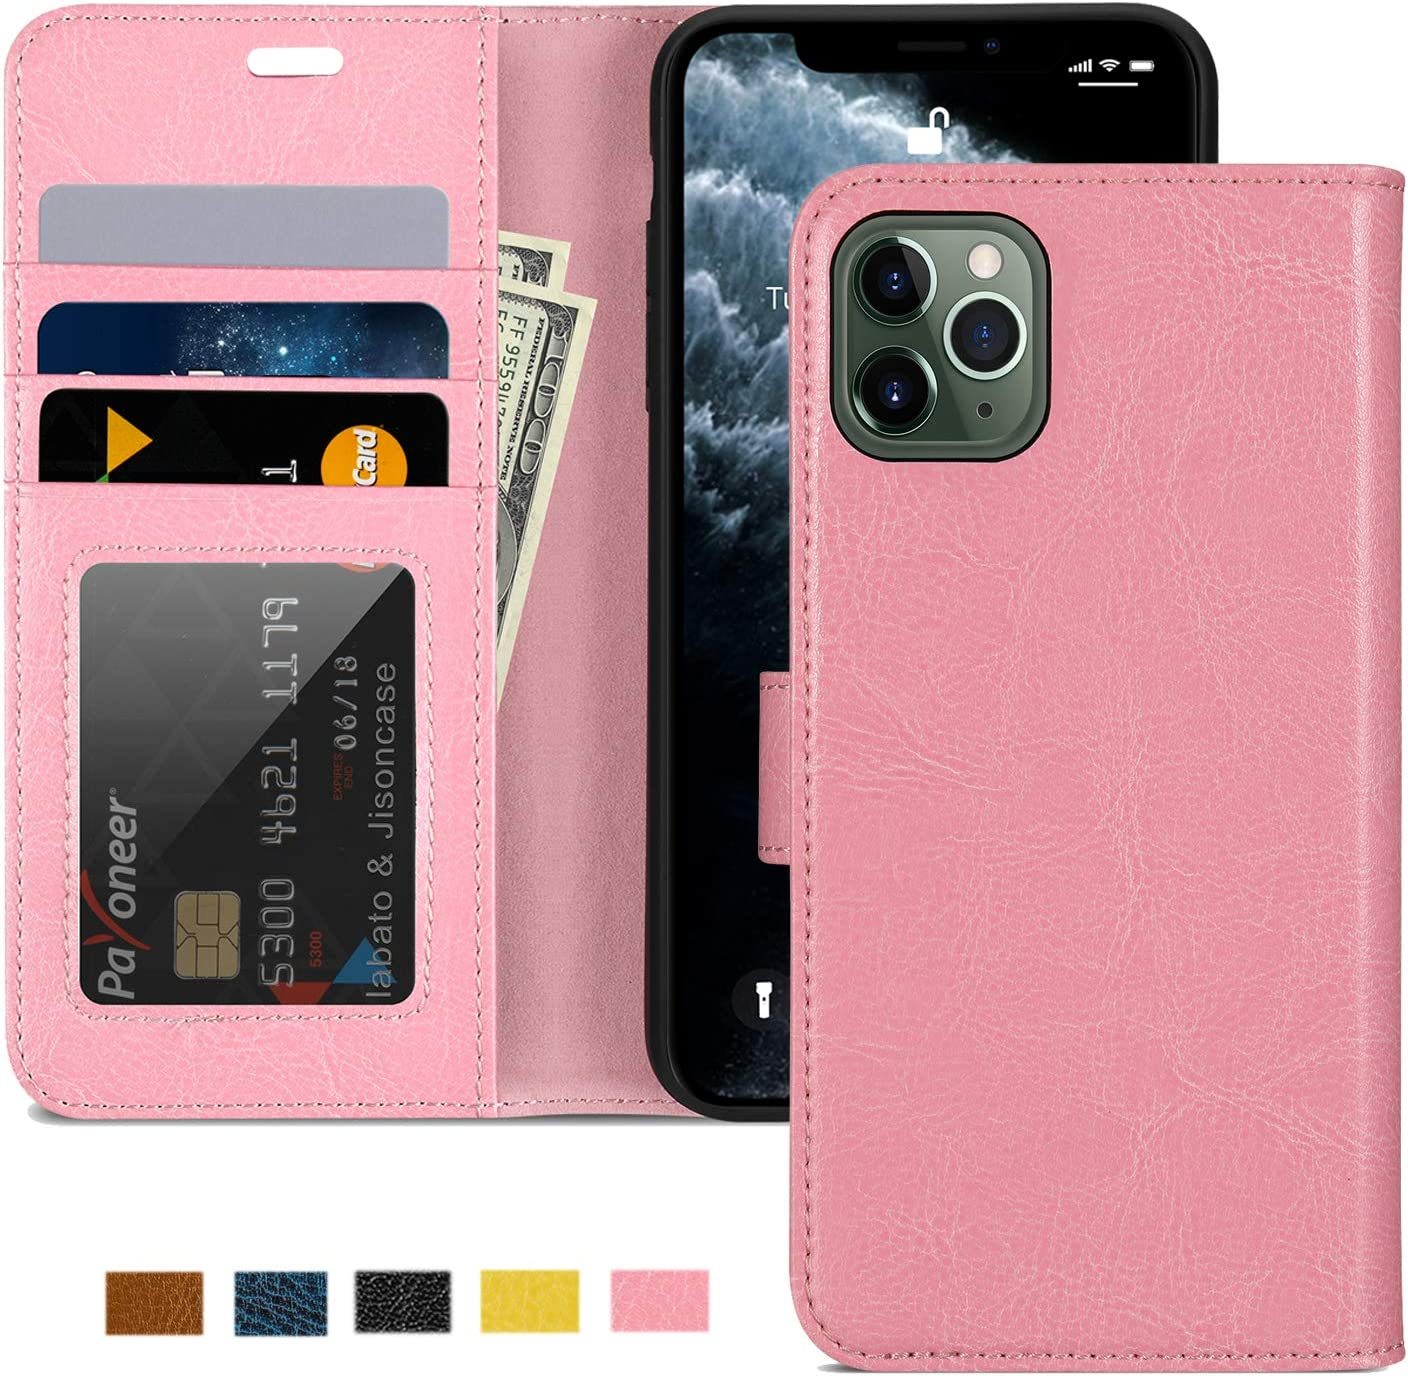 """JISON21 iPhone 11 Pro Max Wallet Case, Leather Wallet Flip Case with Card Holder Foldable Kickstand, Magnetic Closure Shockproof Wallet Case for iPhone 11 Pro Max 6.5""""(Pink)"""